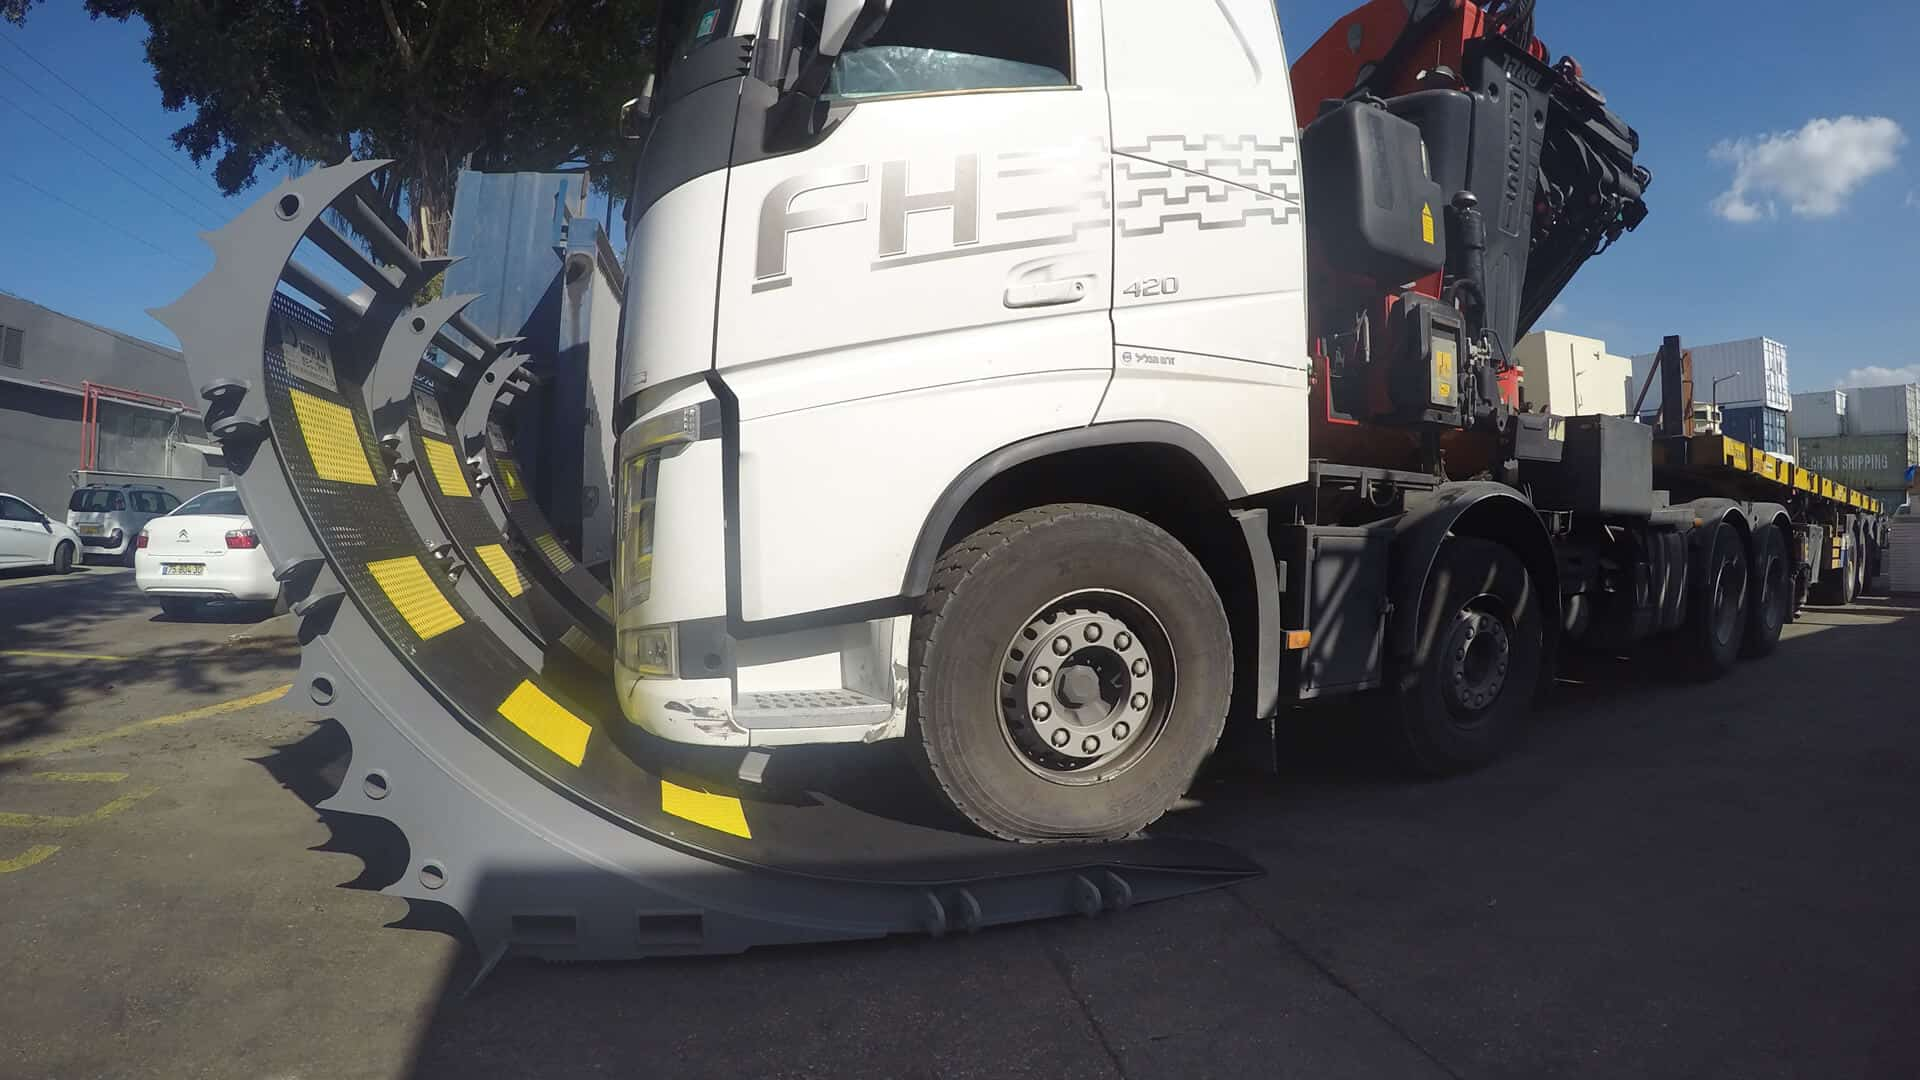 ROBUST MOBILE BARRIER , FIRST and only mobile truck barrier in the world that stops heavy trucks and semi-trailers weighing up to 40 tons at 80 kmh (50 mph)